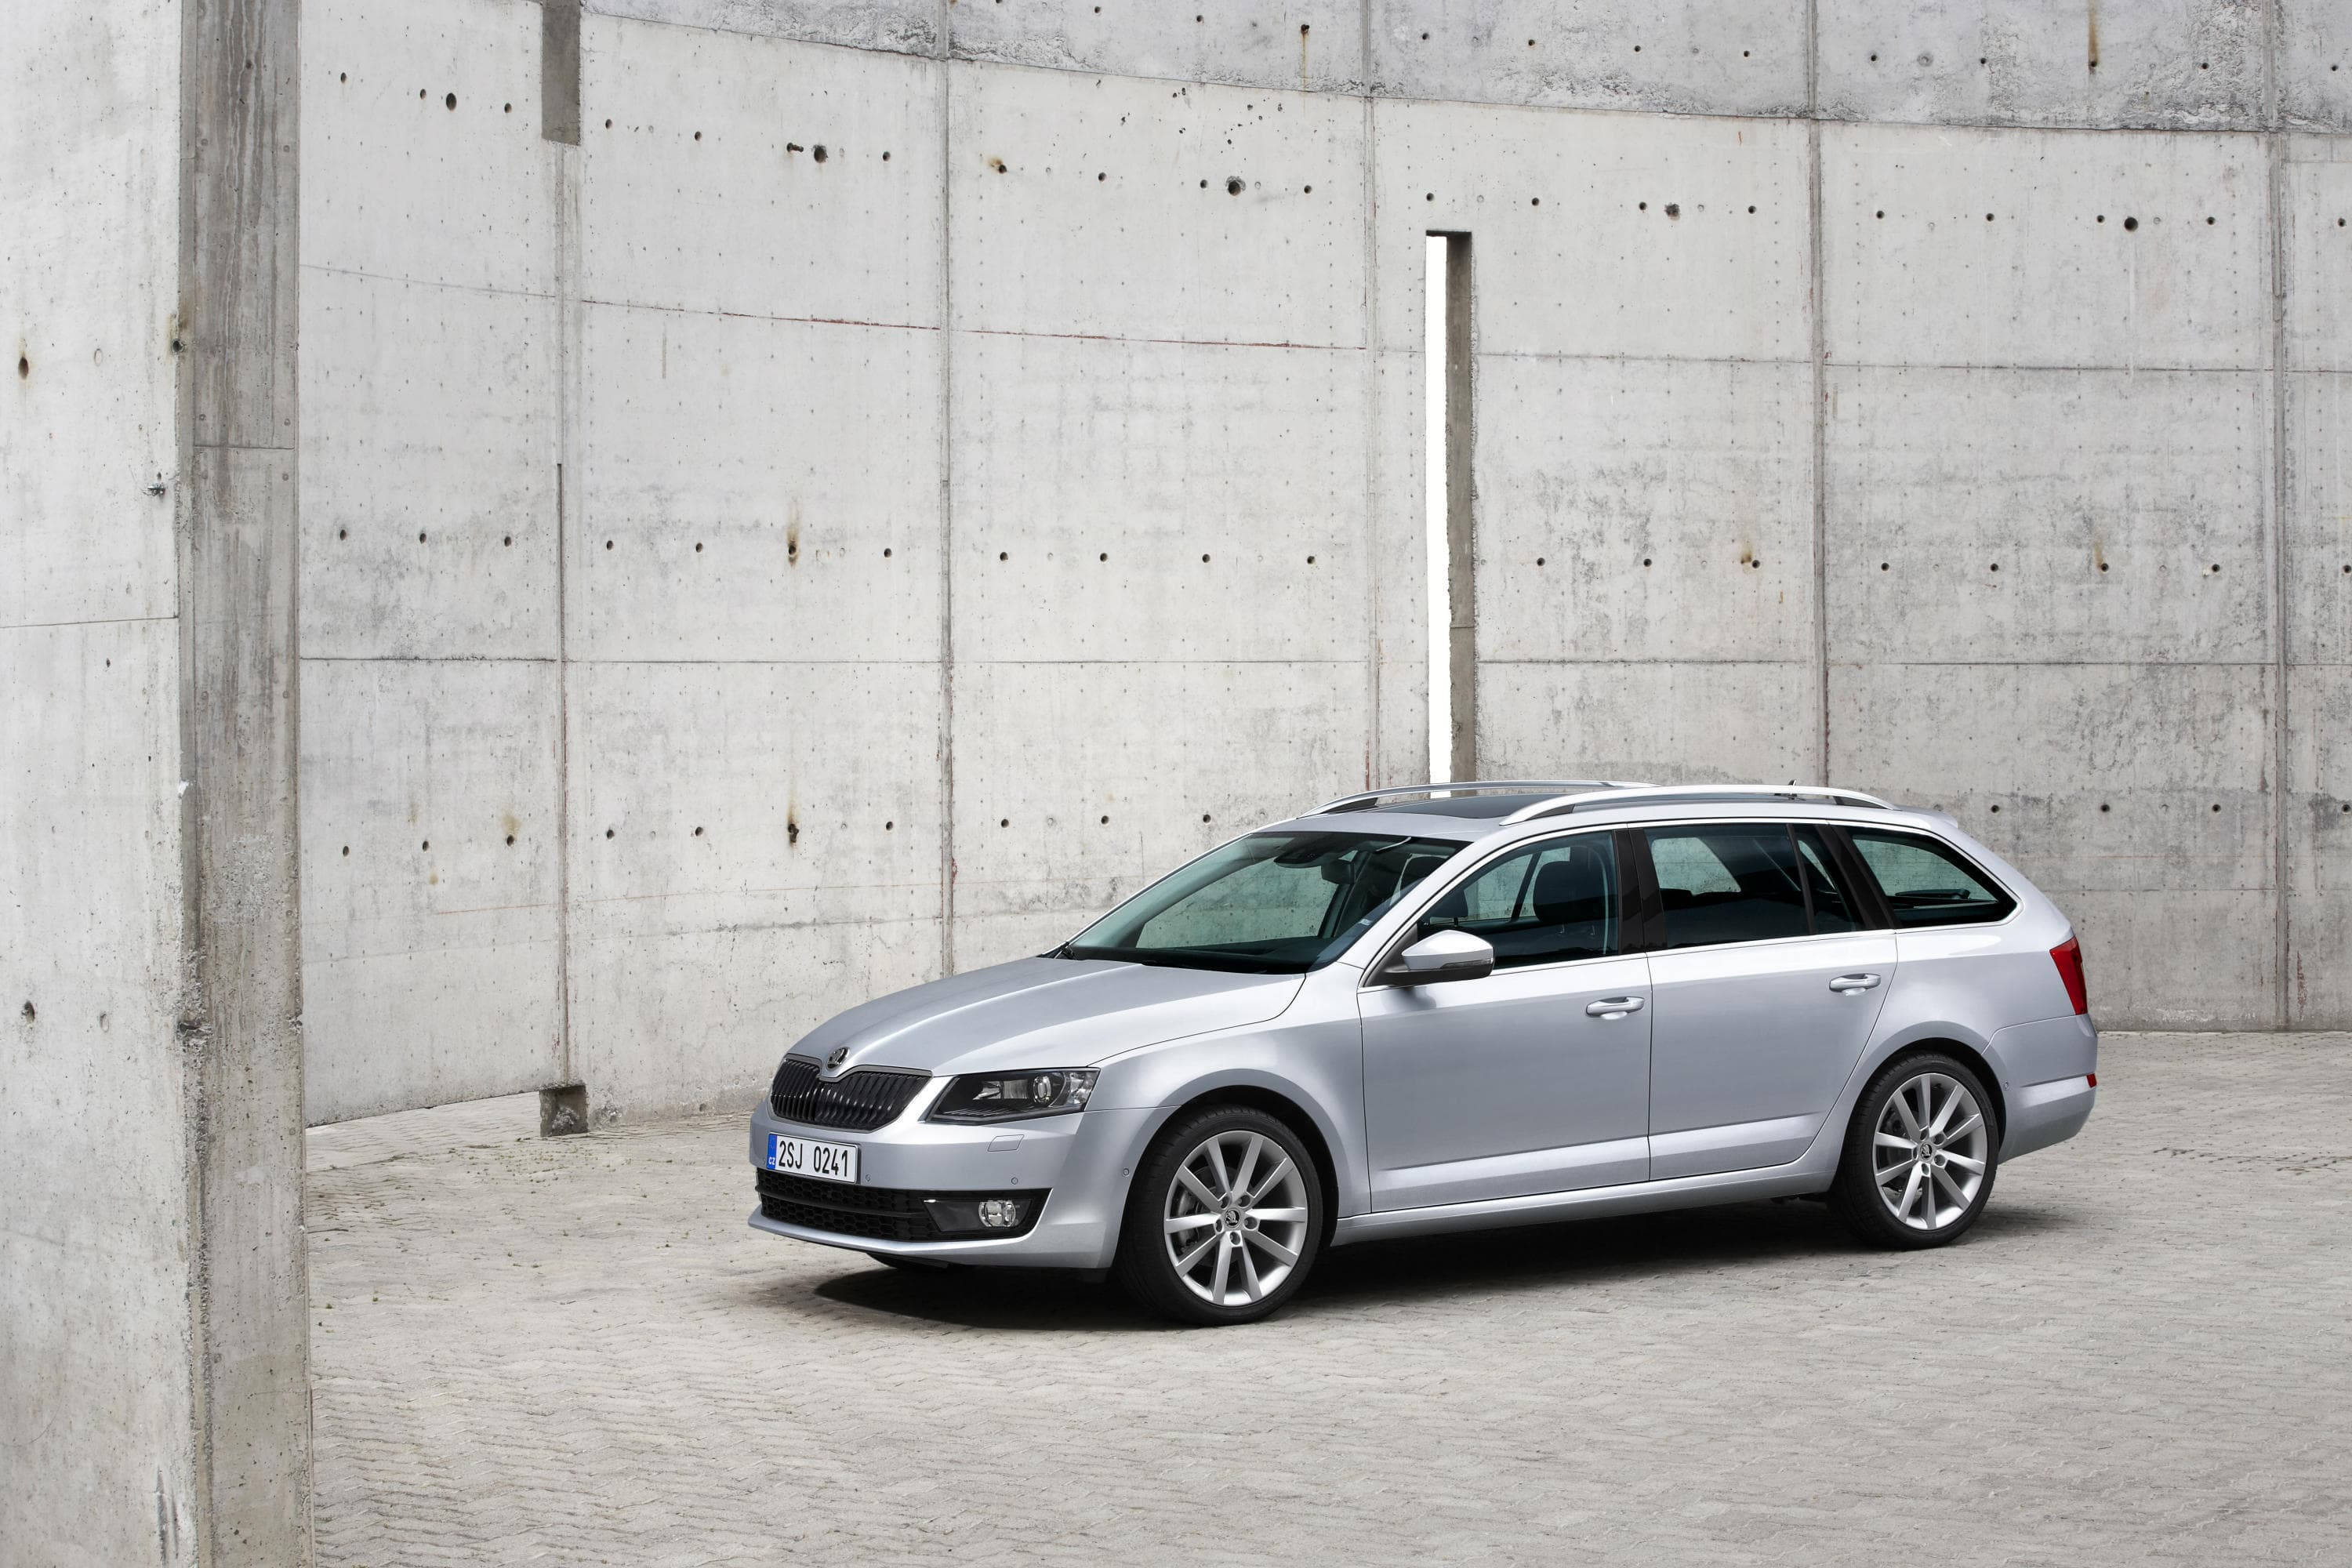 Skoda Octavia A7 Desktop wallpaper